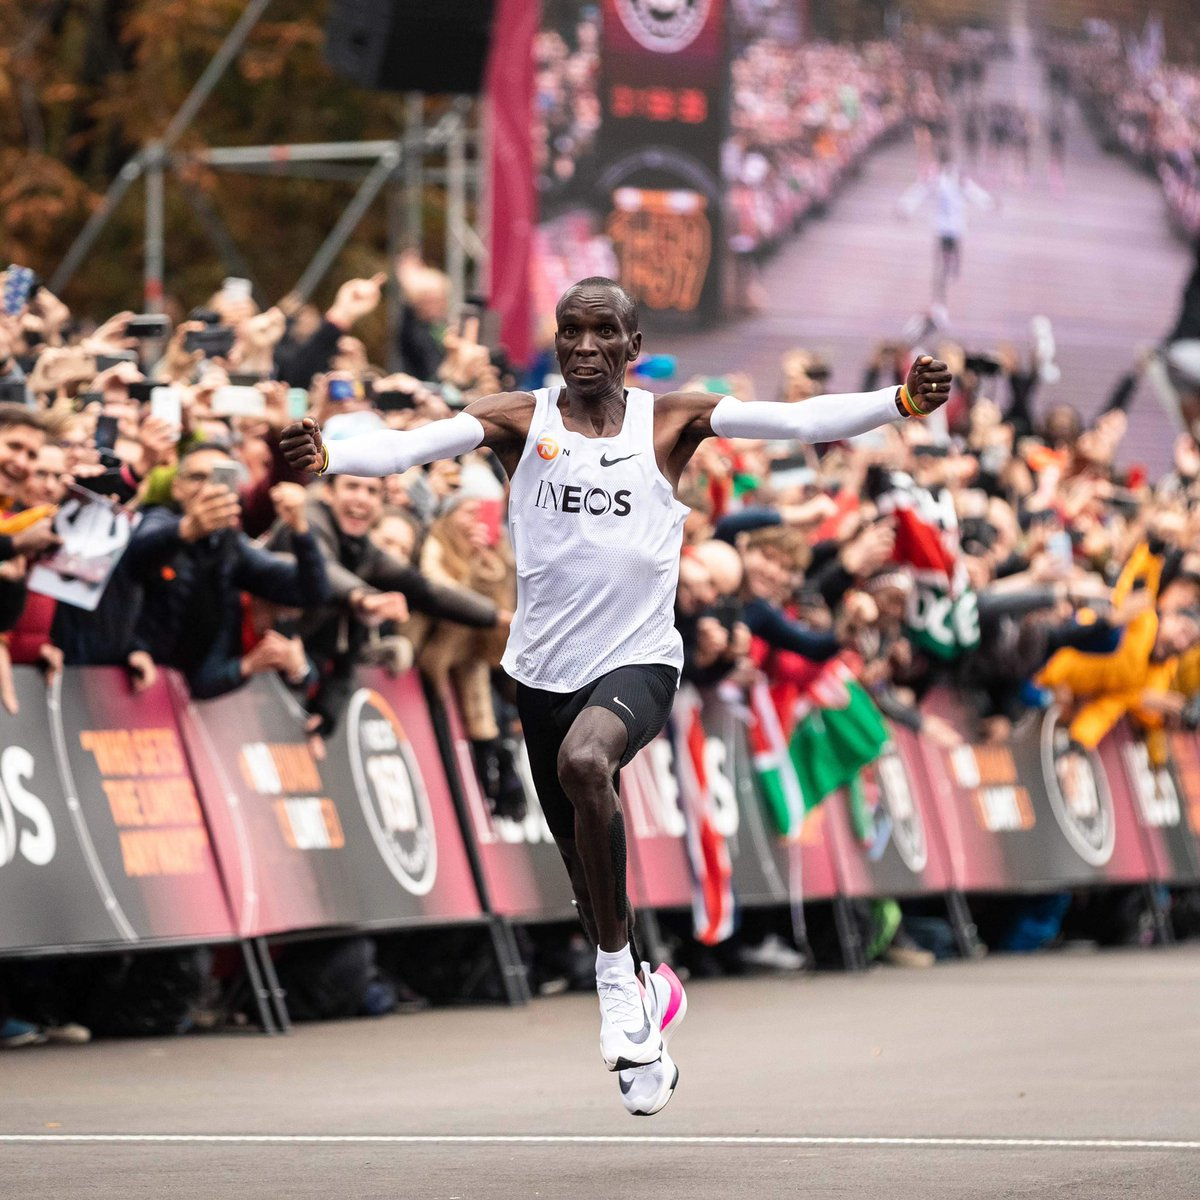 #MondayMemories 🔙 / A Saturday run like you've never seen before. Eliud Kipchoge became the first human being to run a marathon in under two hours. 🐐